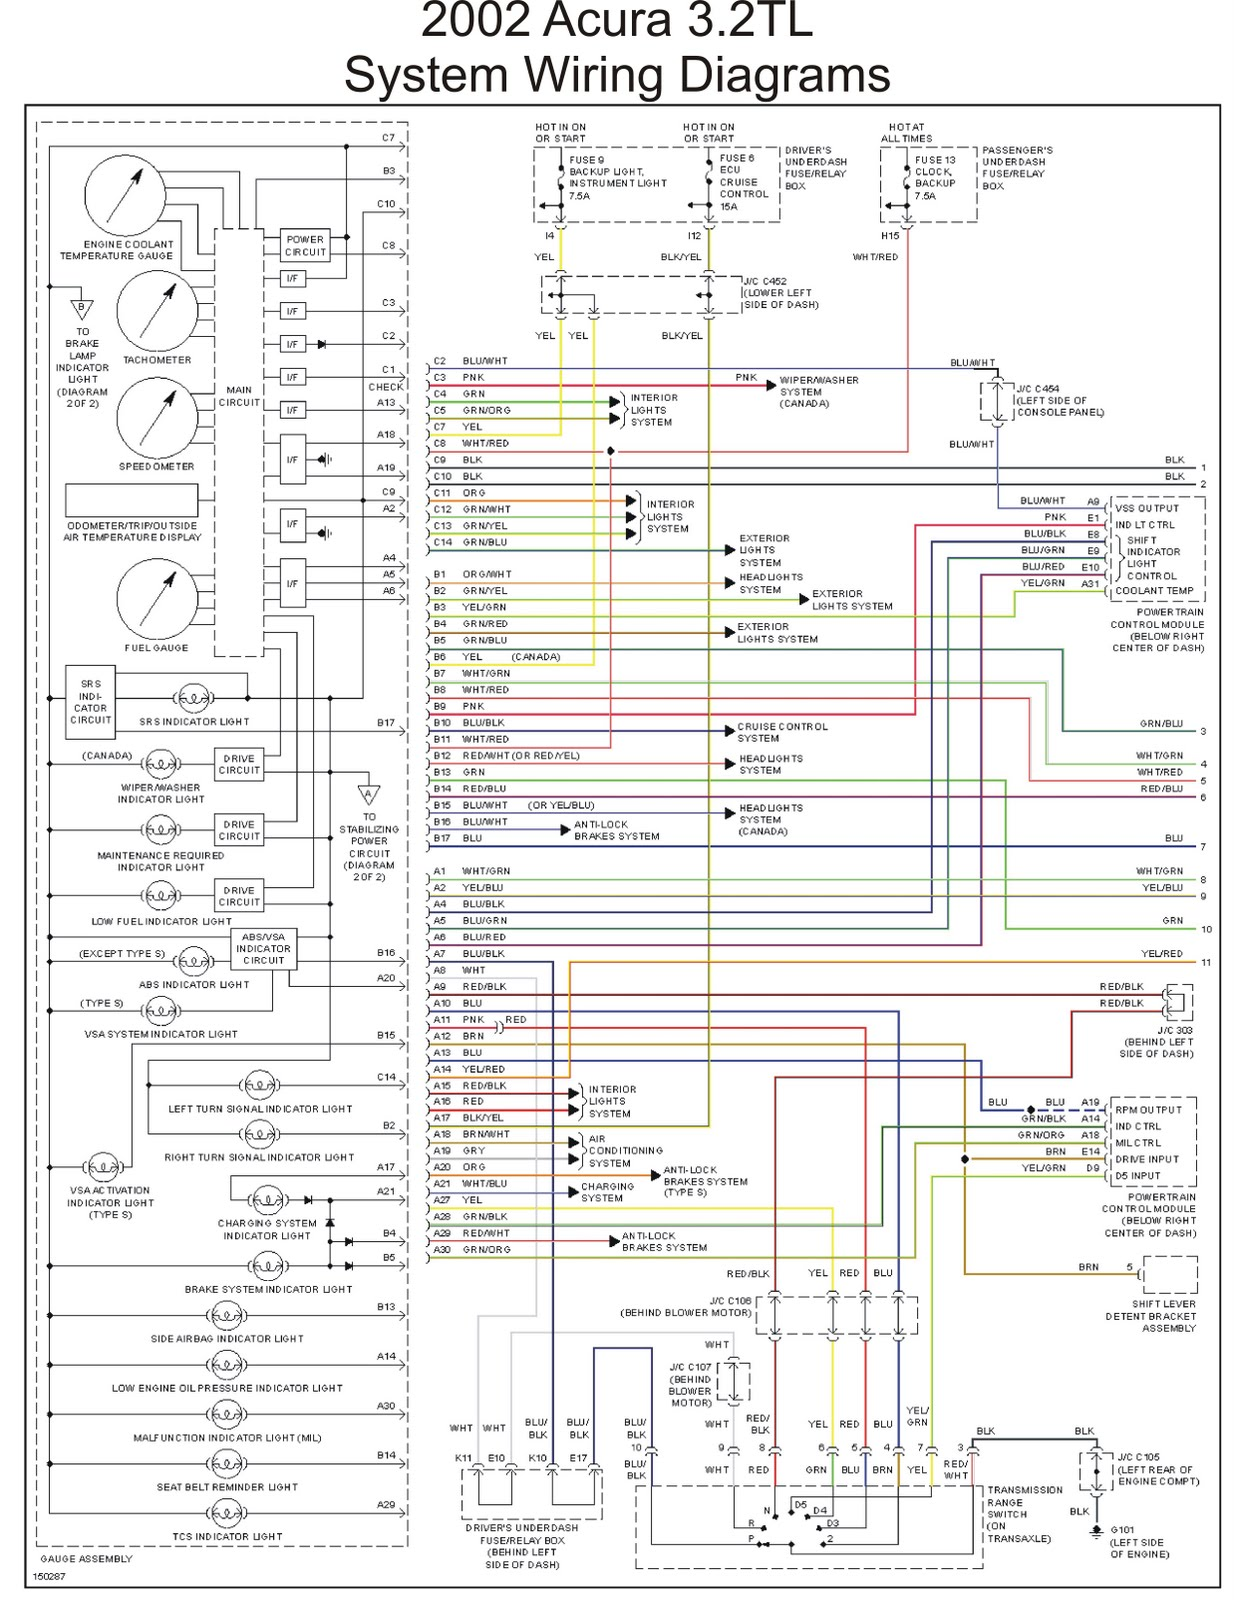 2002 Acura 32TL System Wiring Diagrams part 1 | Schematic